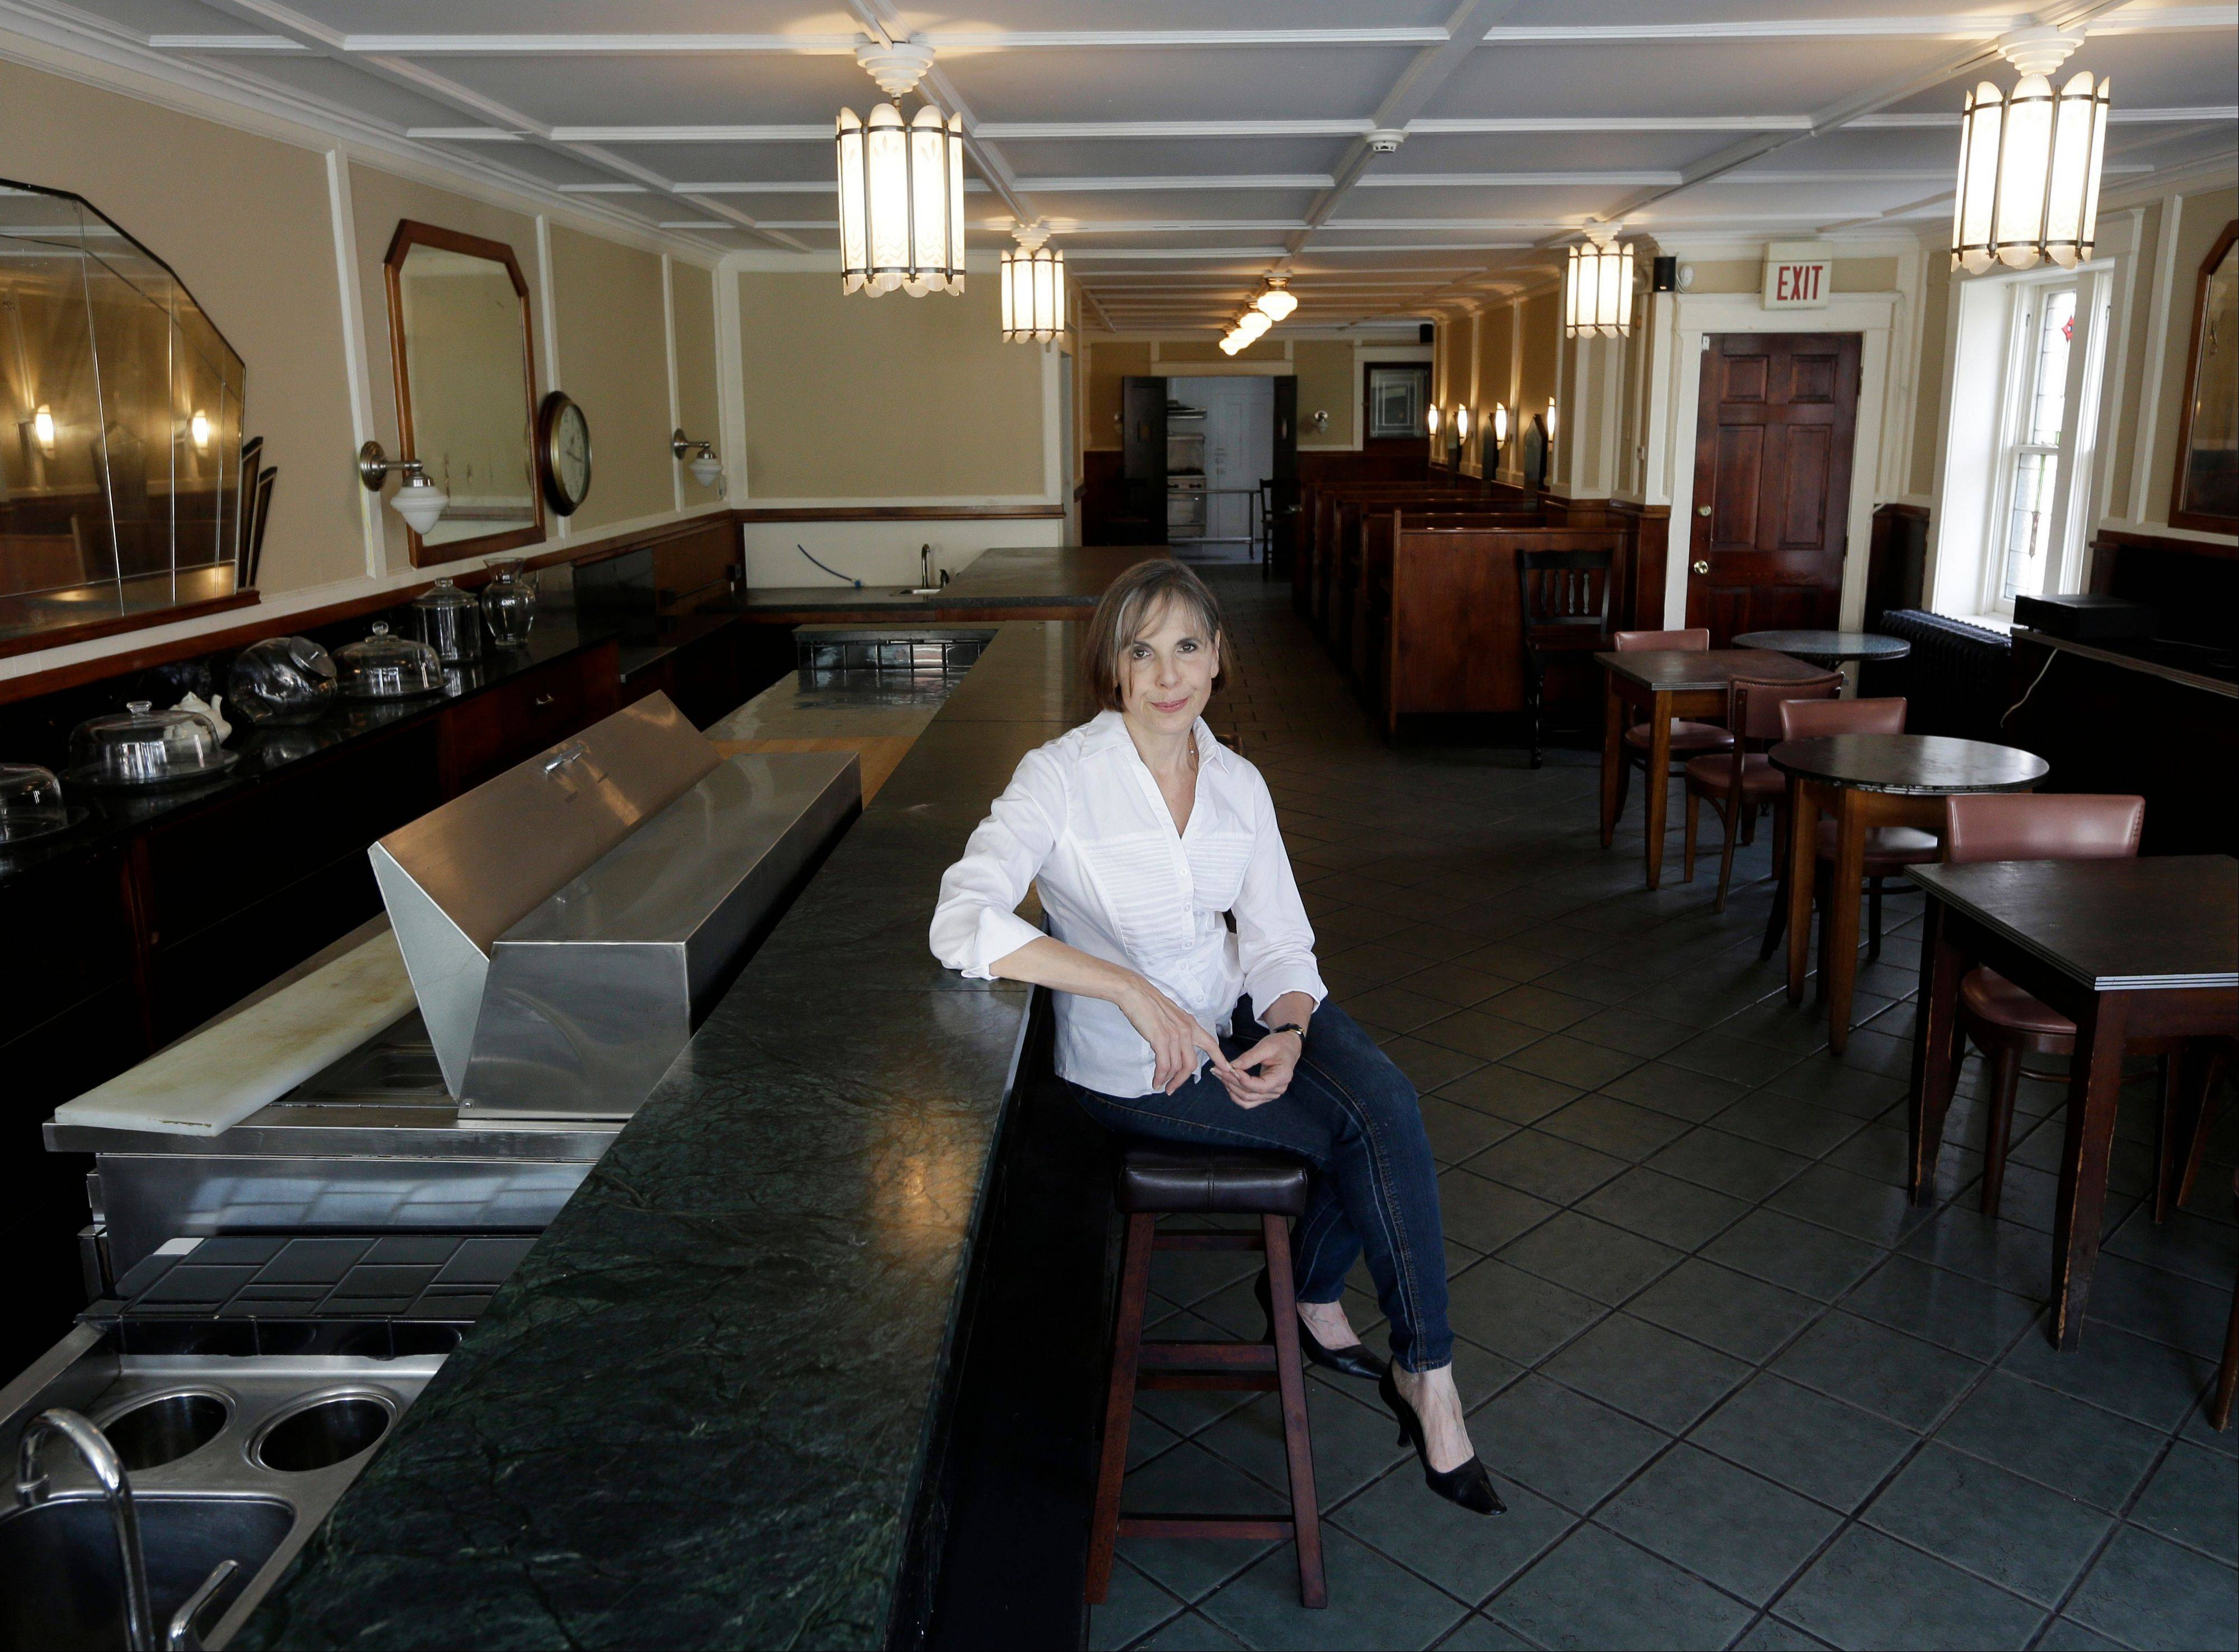 Nina Sklansky sits in an empty restaurant in Catskill, N.Y. Her group is looking for a buzz-worthy, foodie-friendly restaurant in this Hudson River village and are offering the right chef the Main Street space free rent for a year.